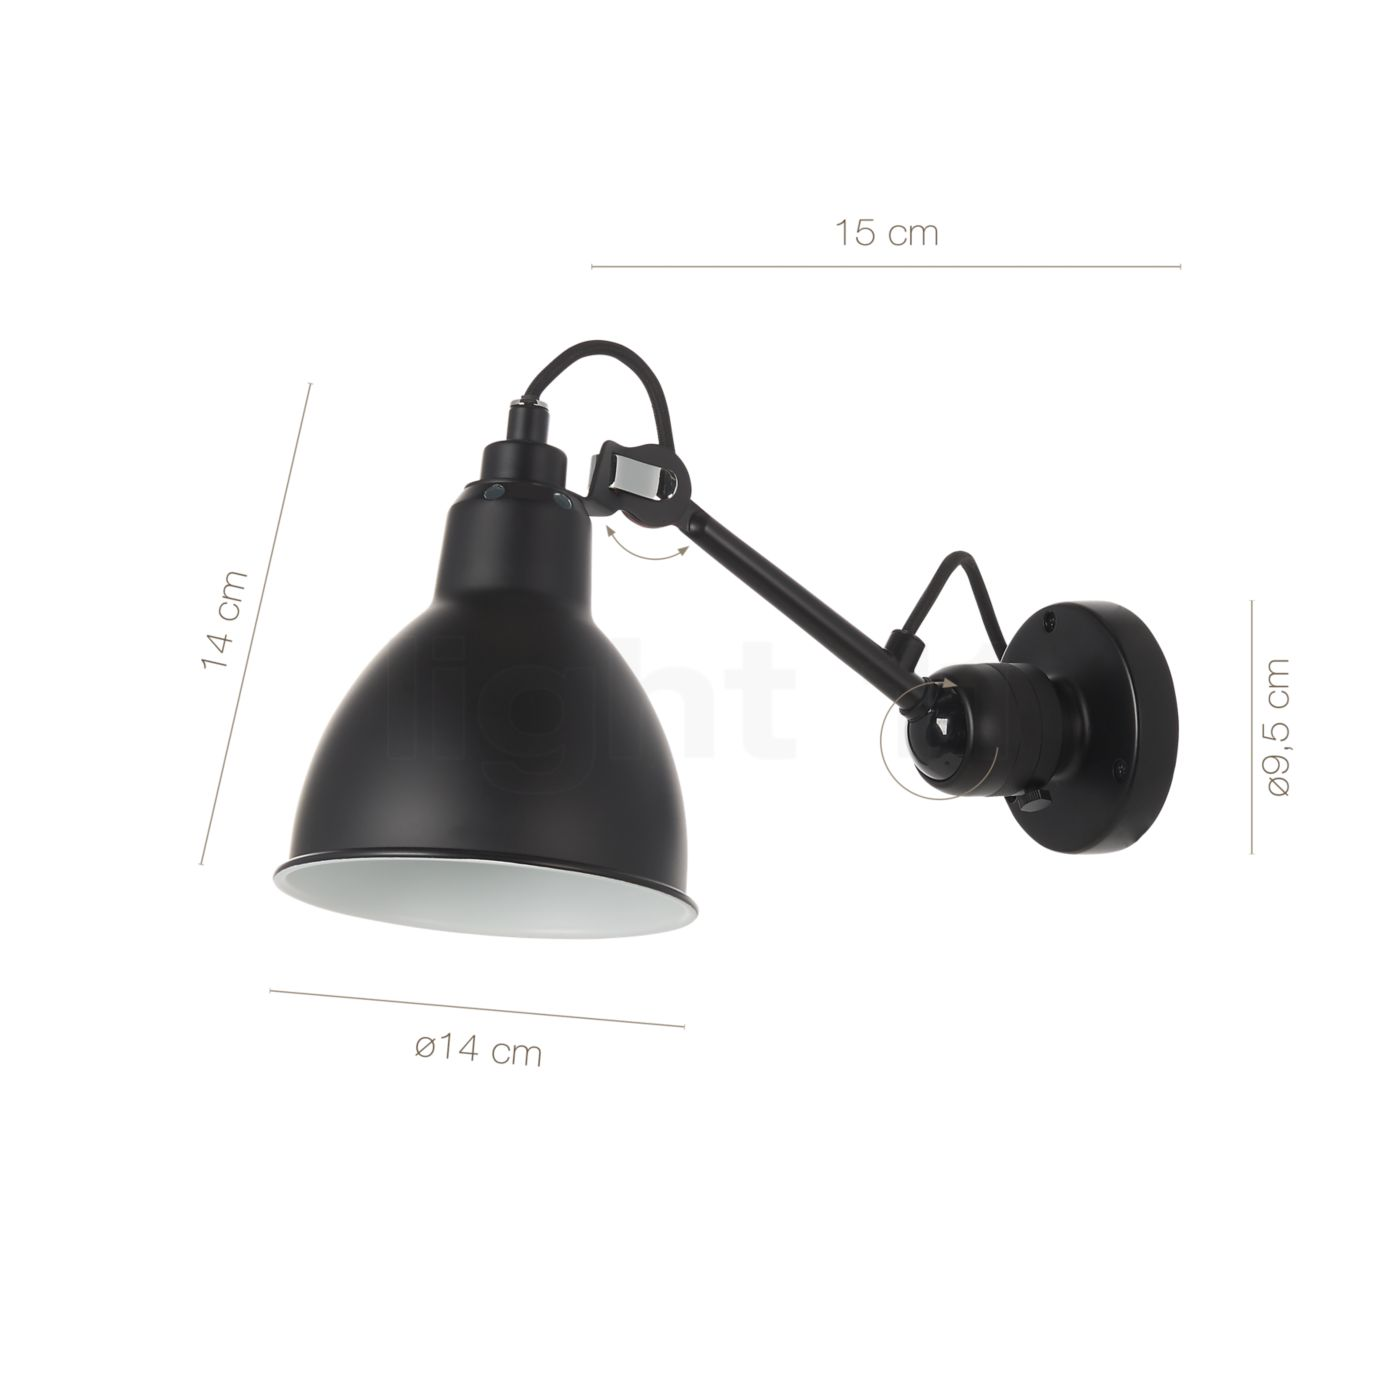 Buy dcw lampe gras no 304 wall light black at light11 aloadofball Choice Image